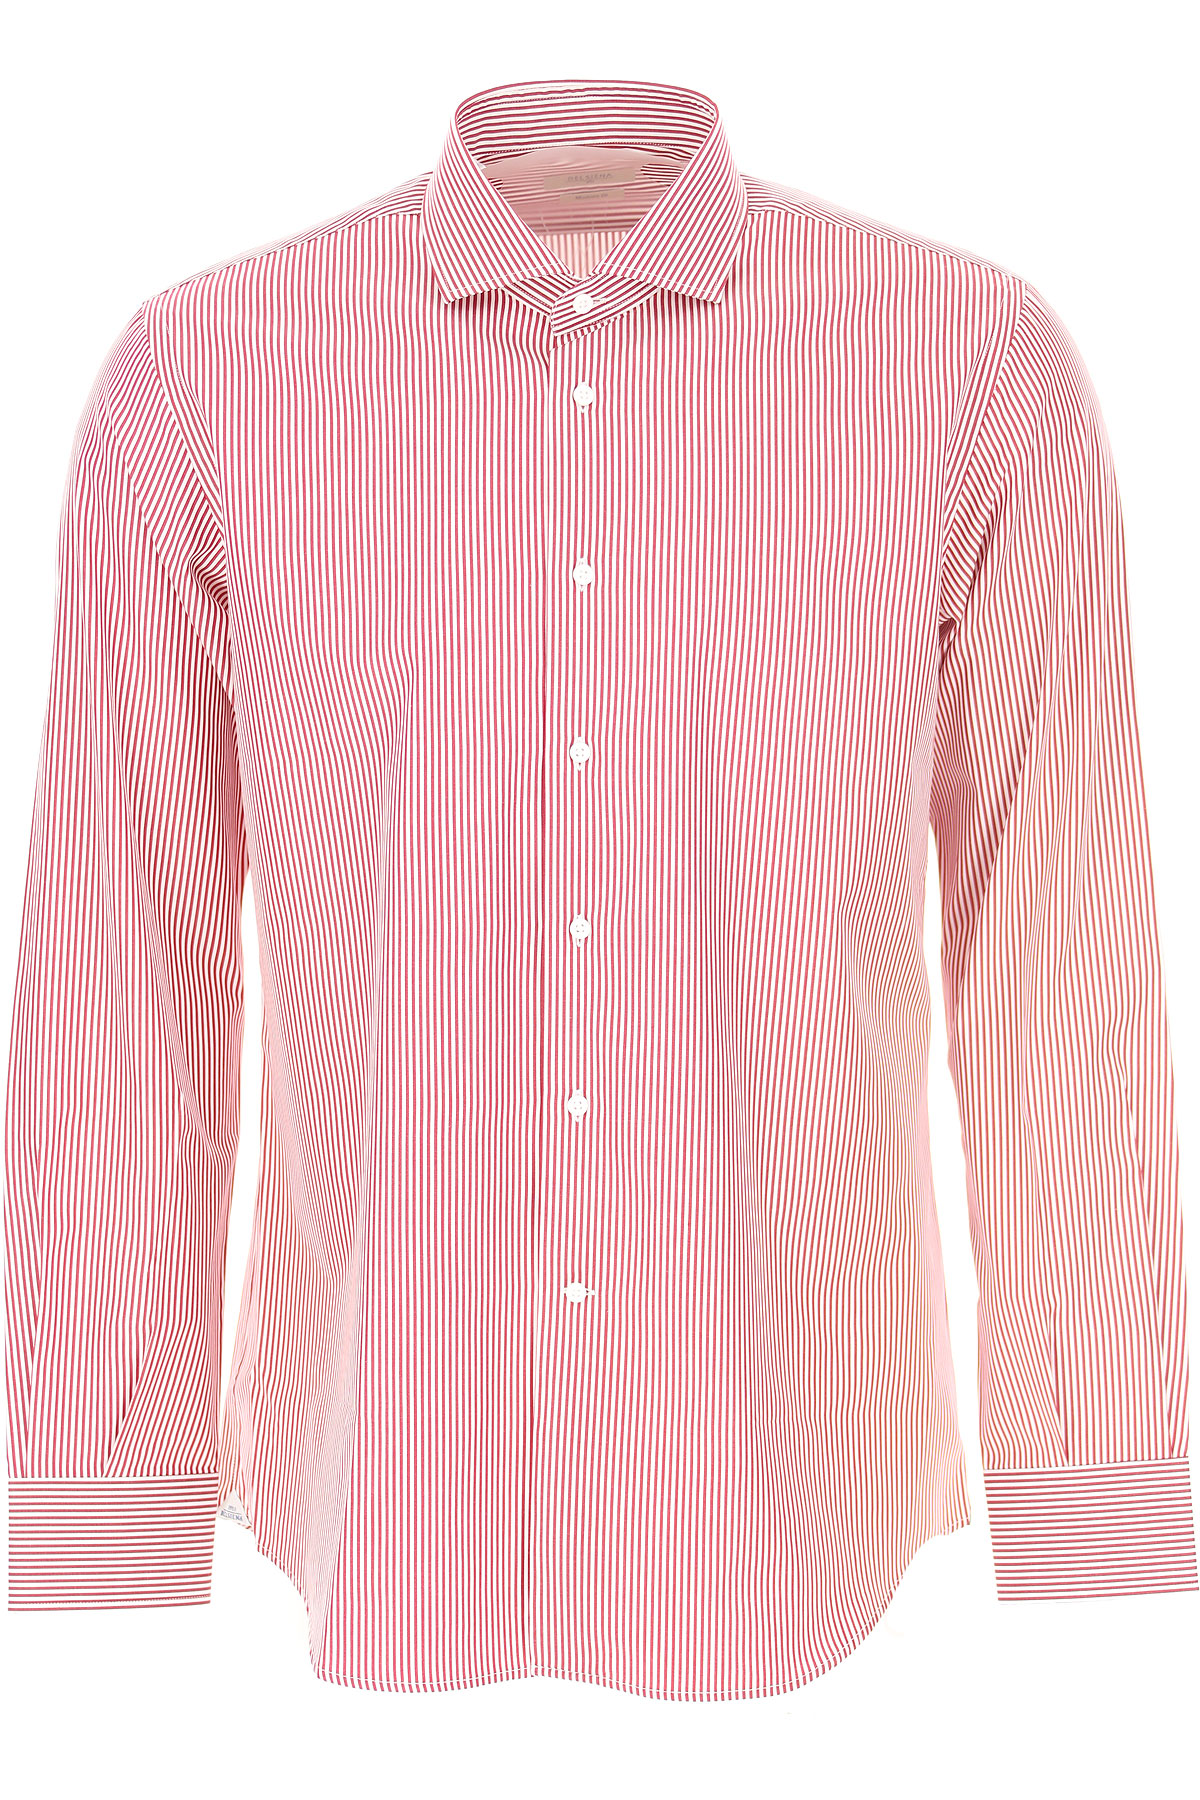 Del Siena Shirt for Men On Sale, Red, Cotton, 2019, 15 15.5 15.75 16 17